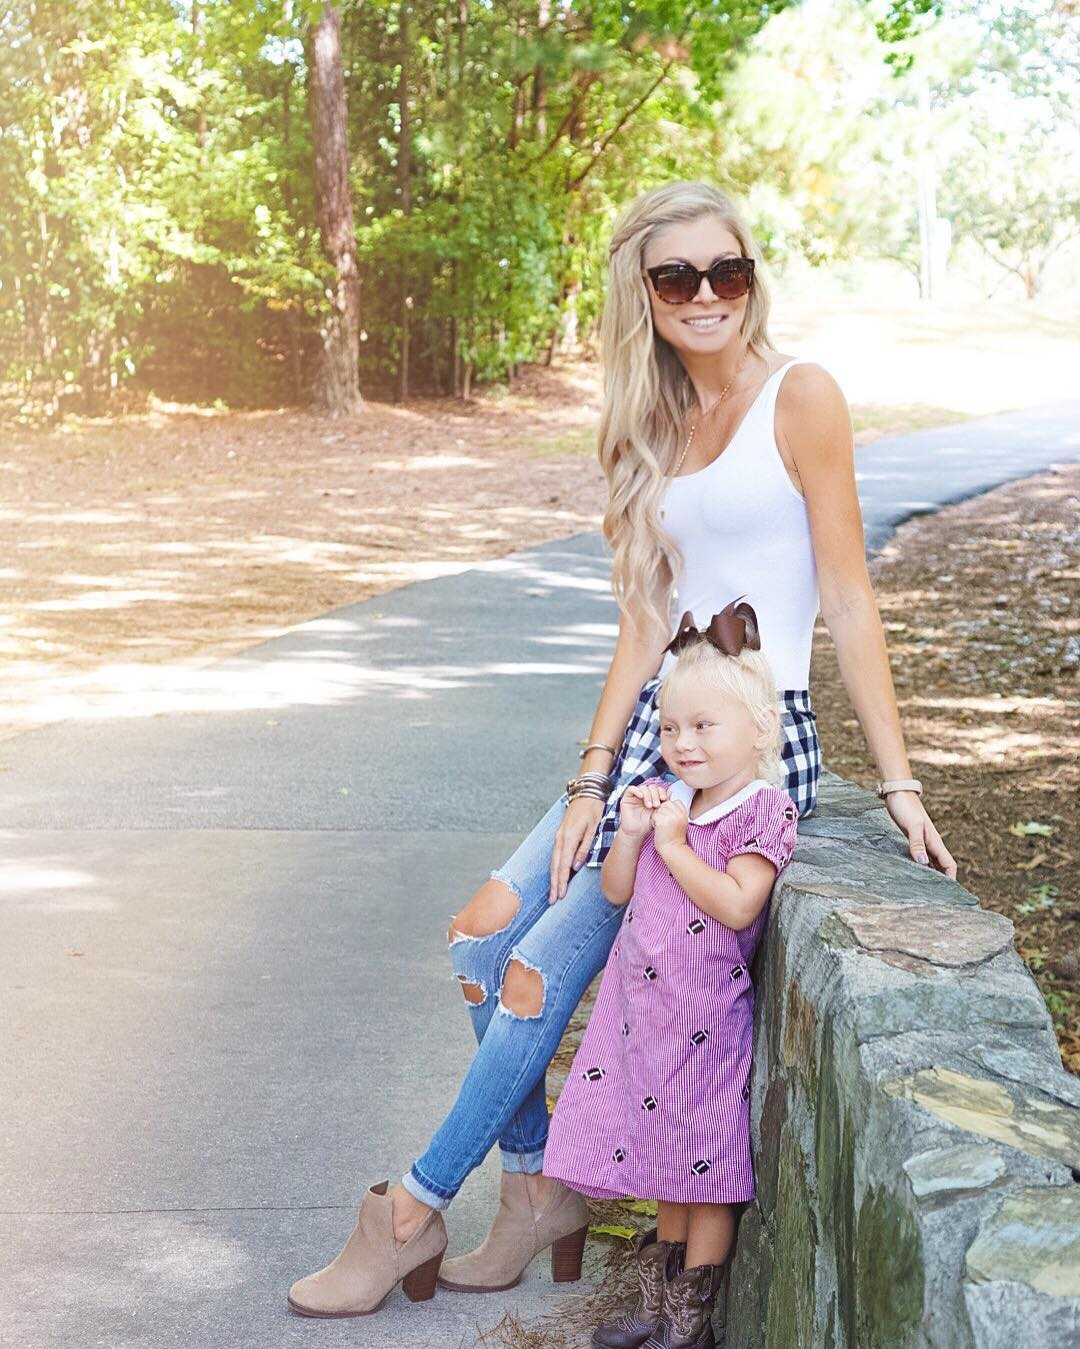 Morning walk with my little football loving babe! Happy Saturday friends!! ☀️☀️ http://liketk.it/2po5E #rolltide #saturdaze #ootd #wiw #momlife #liketkit #liketkitunder50 #lifewithblove